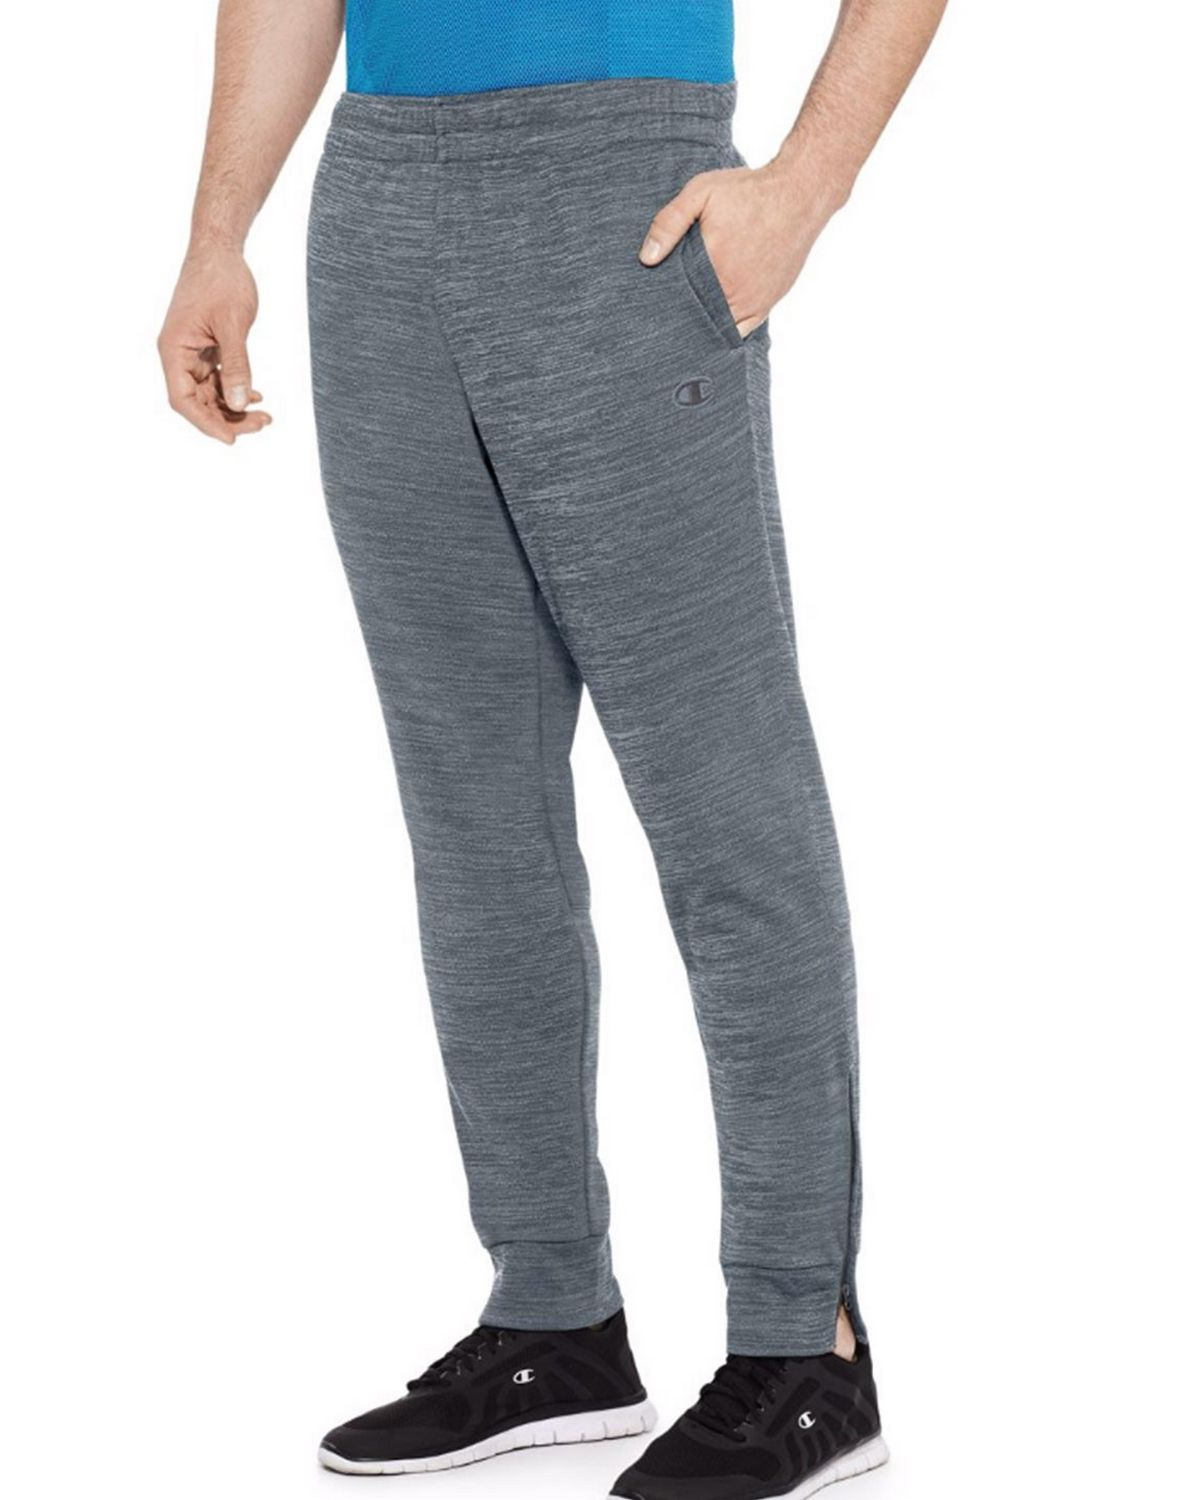 Champion P29877 Mens Fleece Jogger Pants - Concrete Heather - XL P29877